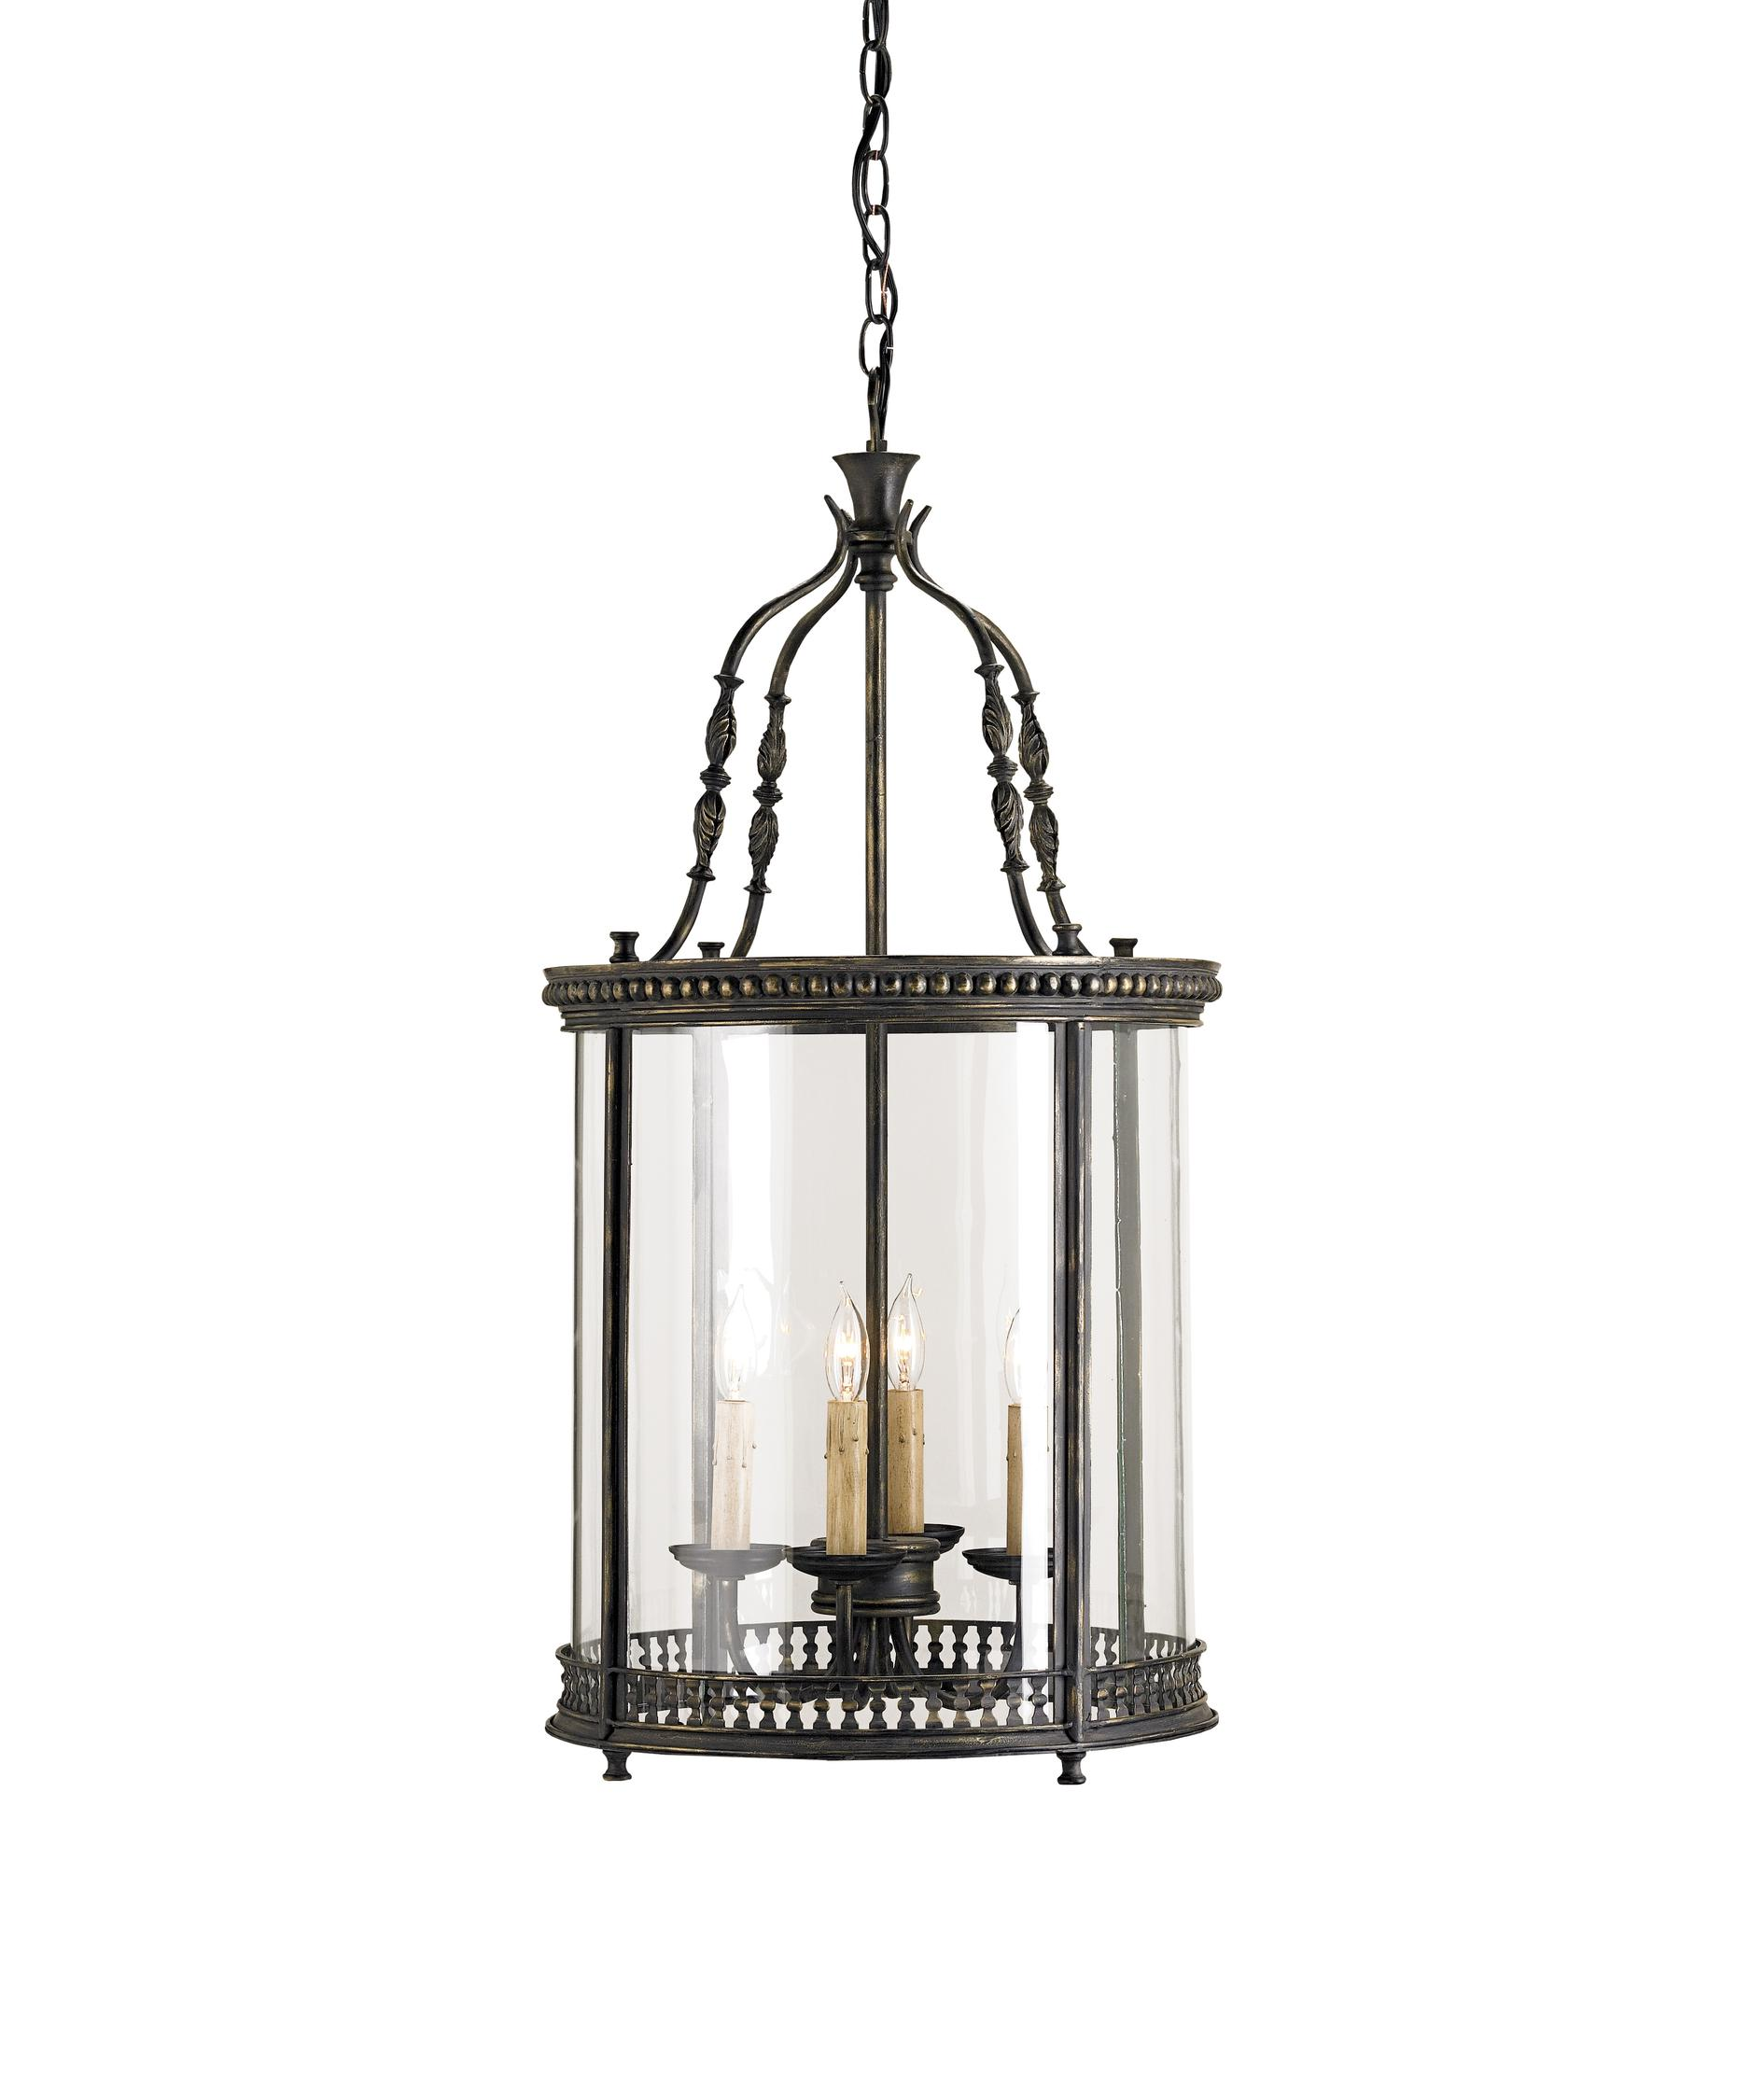 currey and company lighting fixtures. currey and company lighting fixtures 9046 grayson 16 inch wide foyer pendant shown in french black finish 0